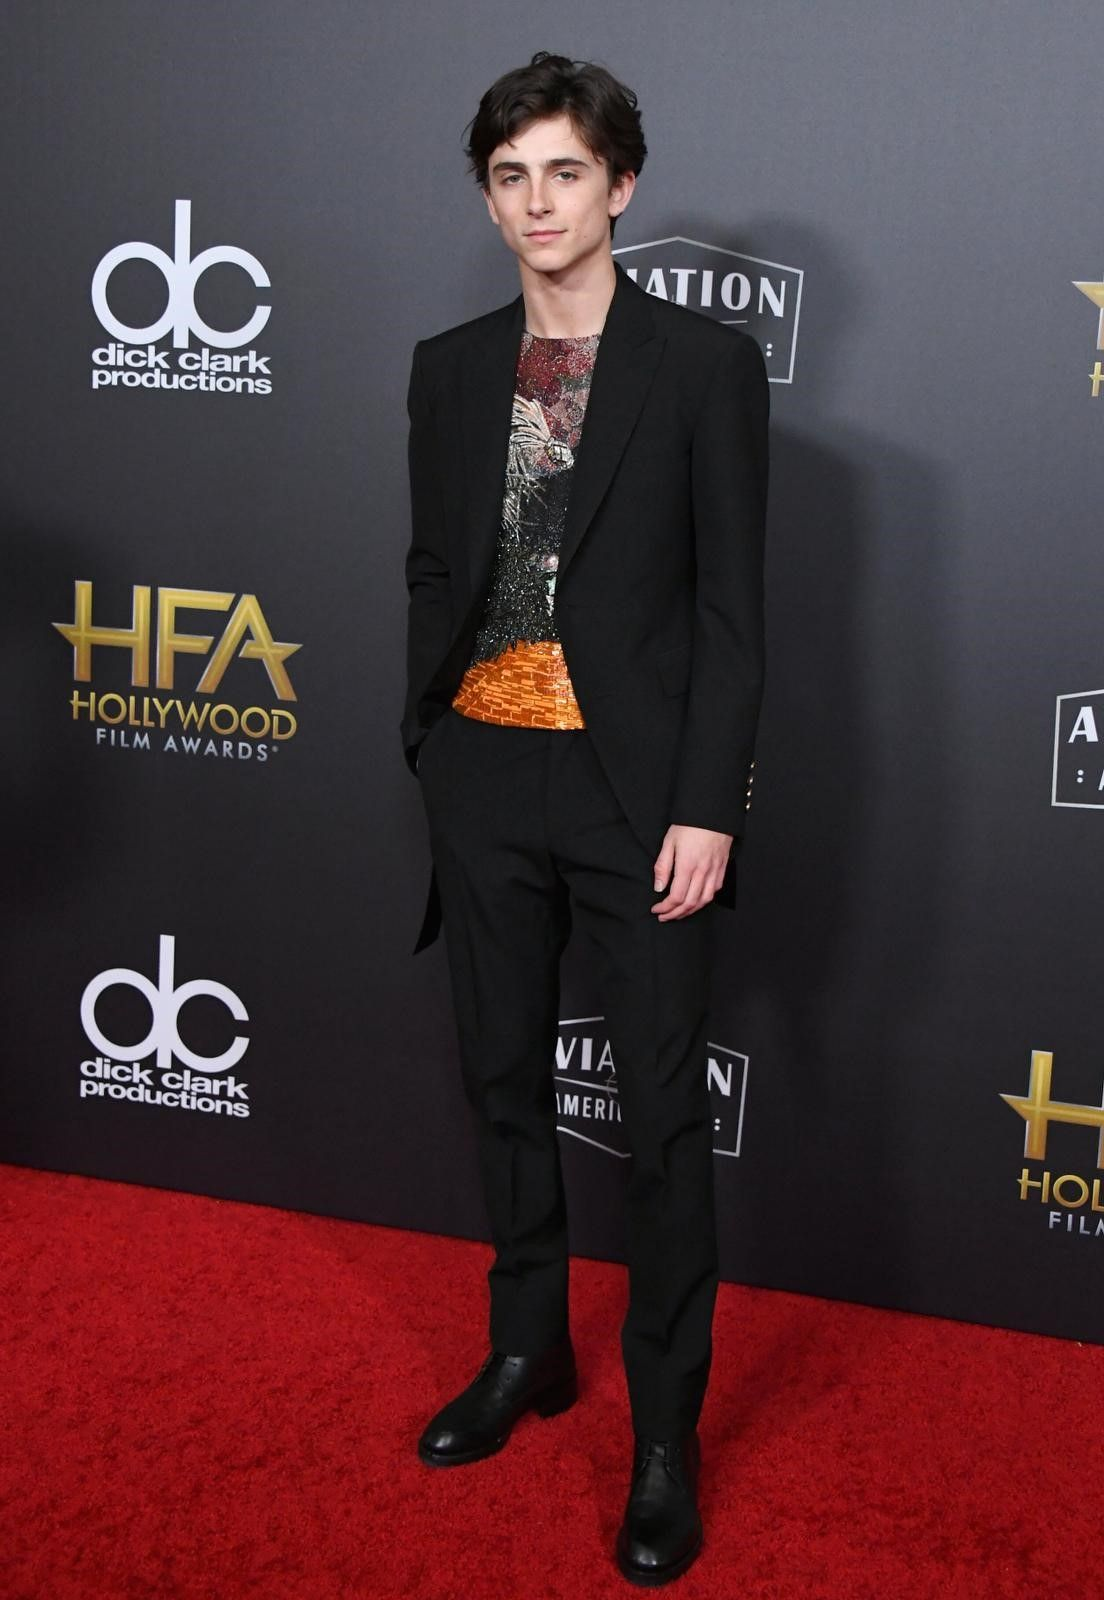 b51b5803d631fd Timothée Chalamet wearing a suit and embroidered from the Louis Vuitton  Spring Summer 2019 Collection by Virgil Abloh. At the Hollywood Film  Awards, ...